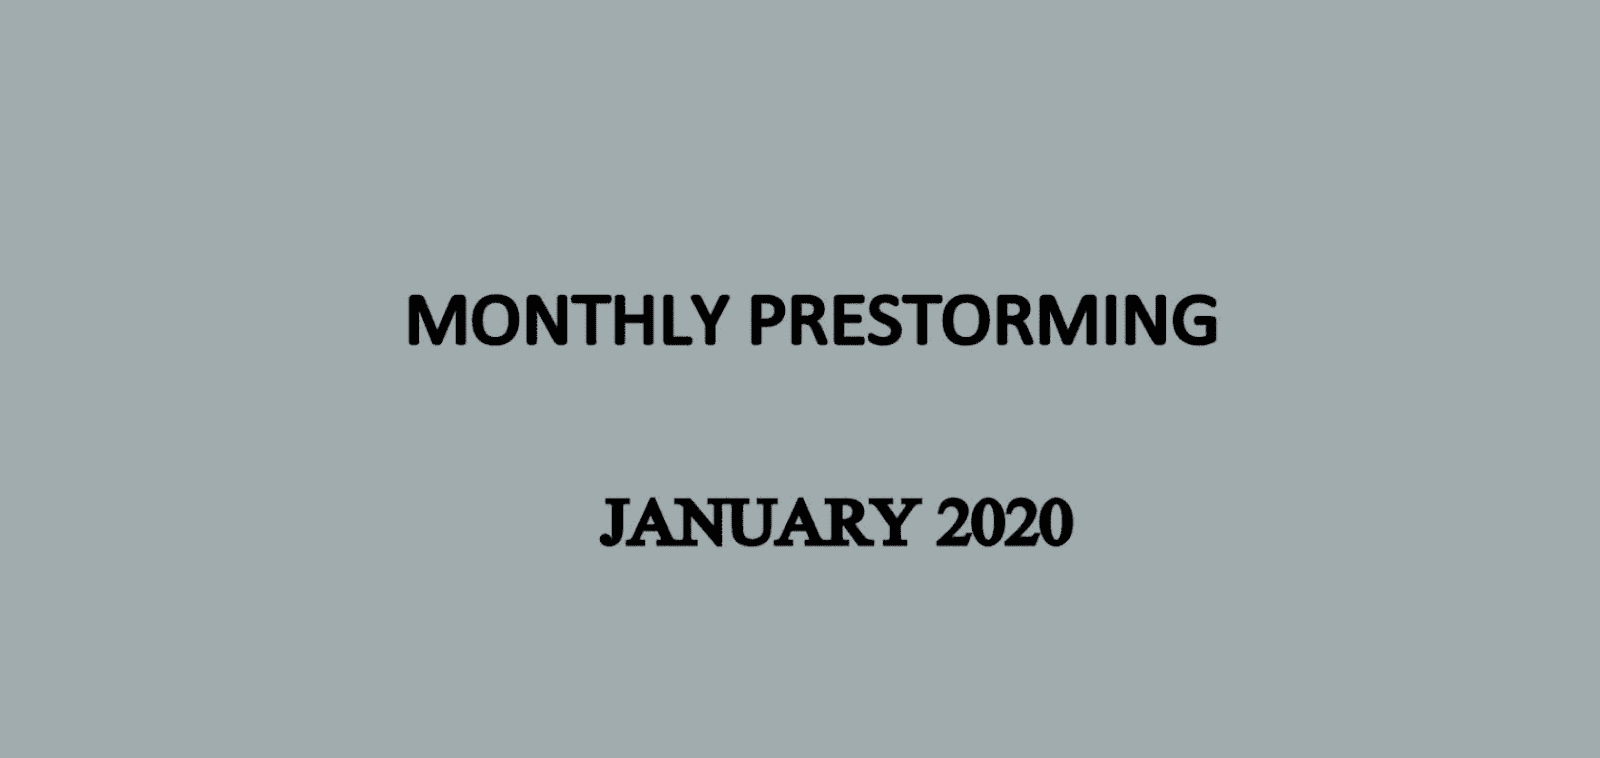 UPSC Monthly Prestorming January for UPSC Prelims 2020